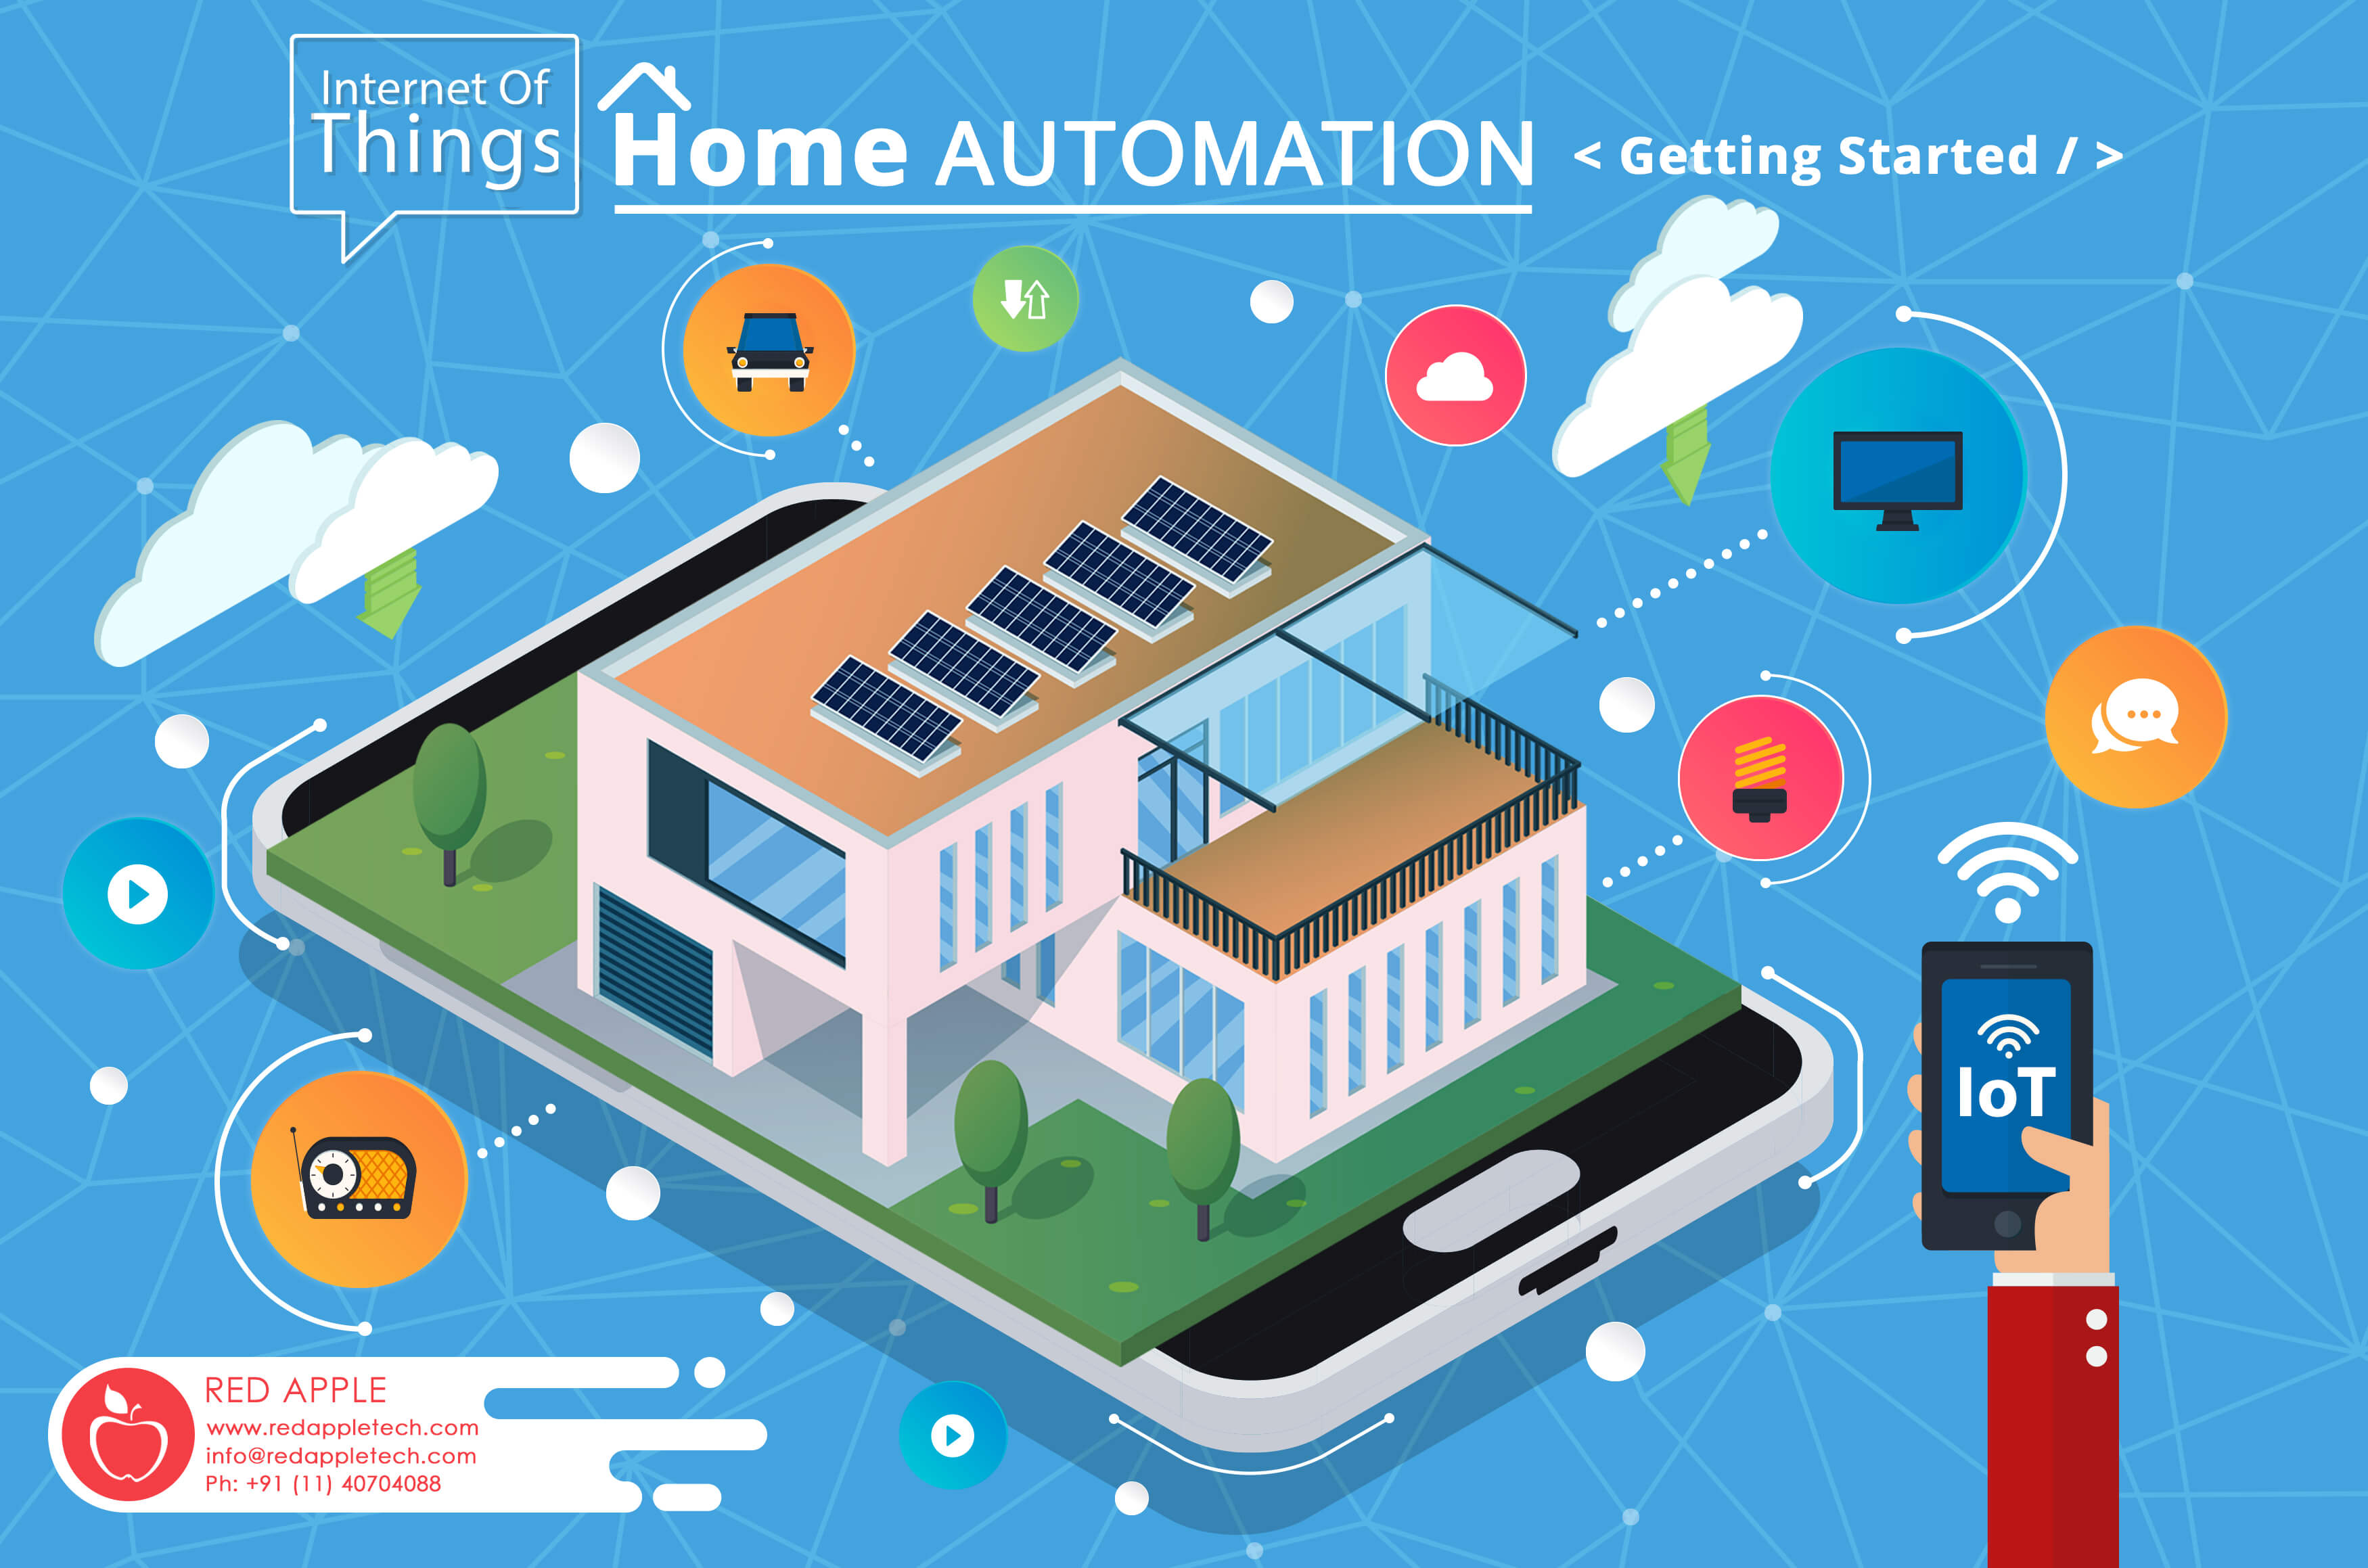 Internet Of Things Iot Advantages Of Home Automation